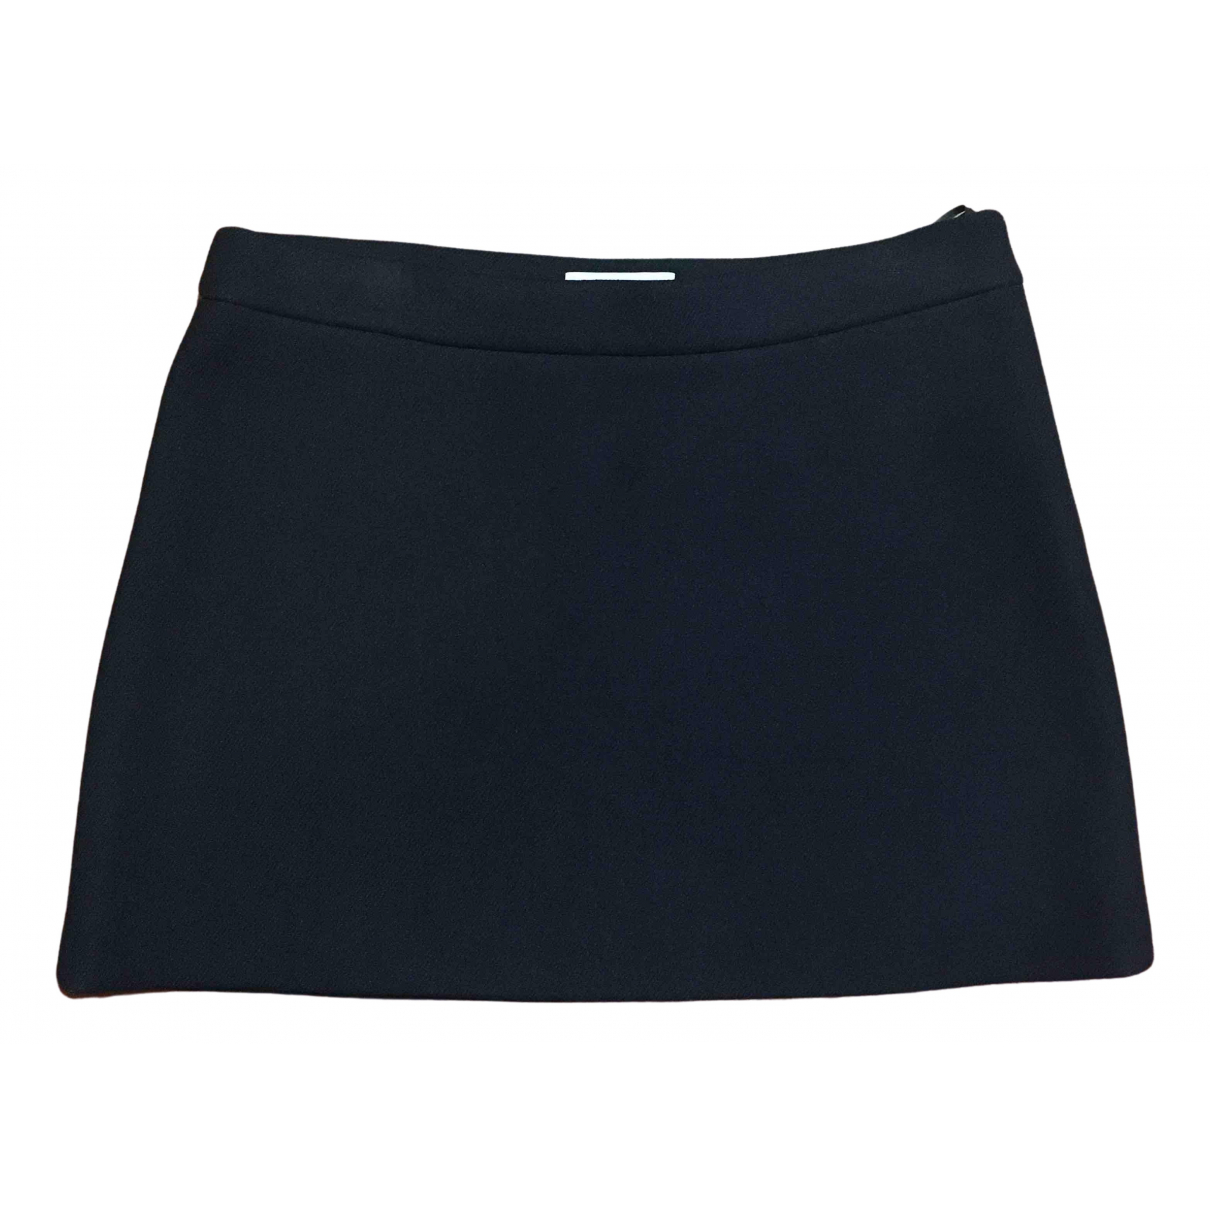 Prada \N Black Wool skirt for Women 46 IT